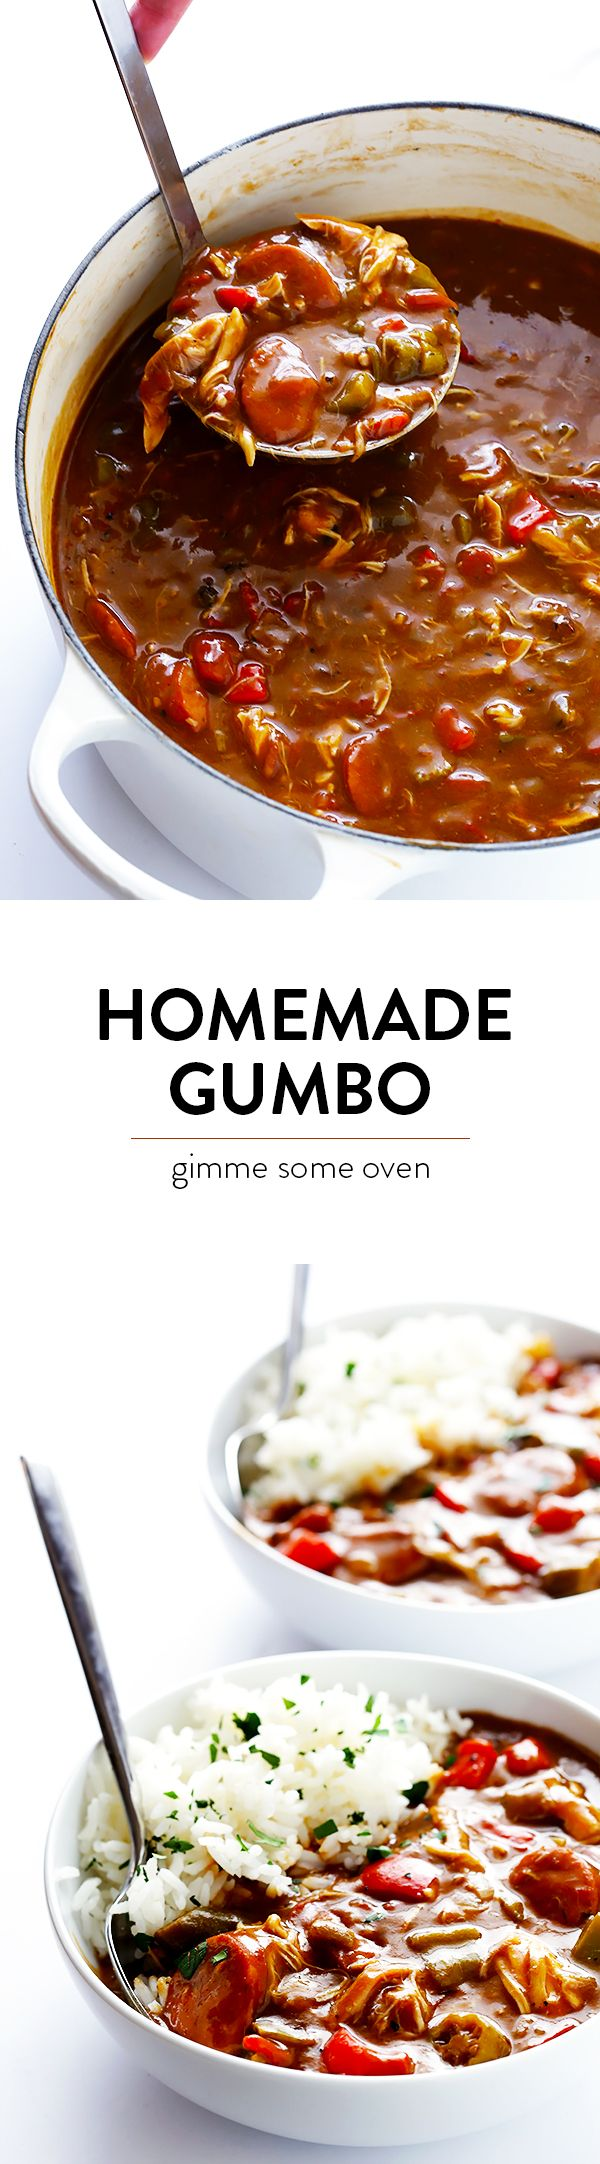 My All-Time Favorite Gumbo Recipe -- made with chicken and andouille sausage, lots of veggies, and absolutely delicious!! | gimmesomeoven.com